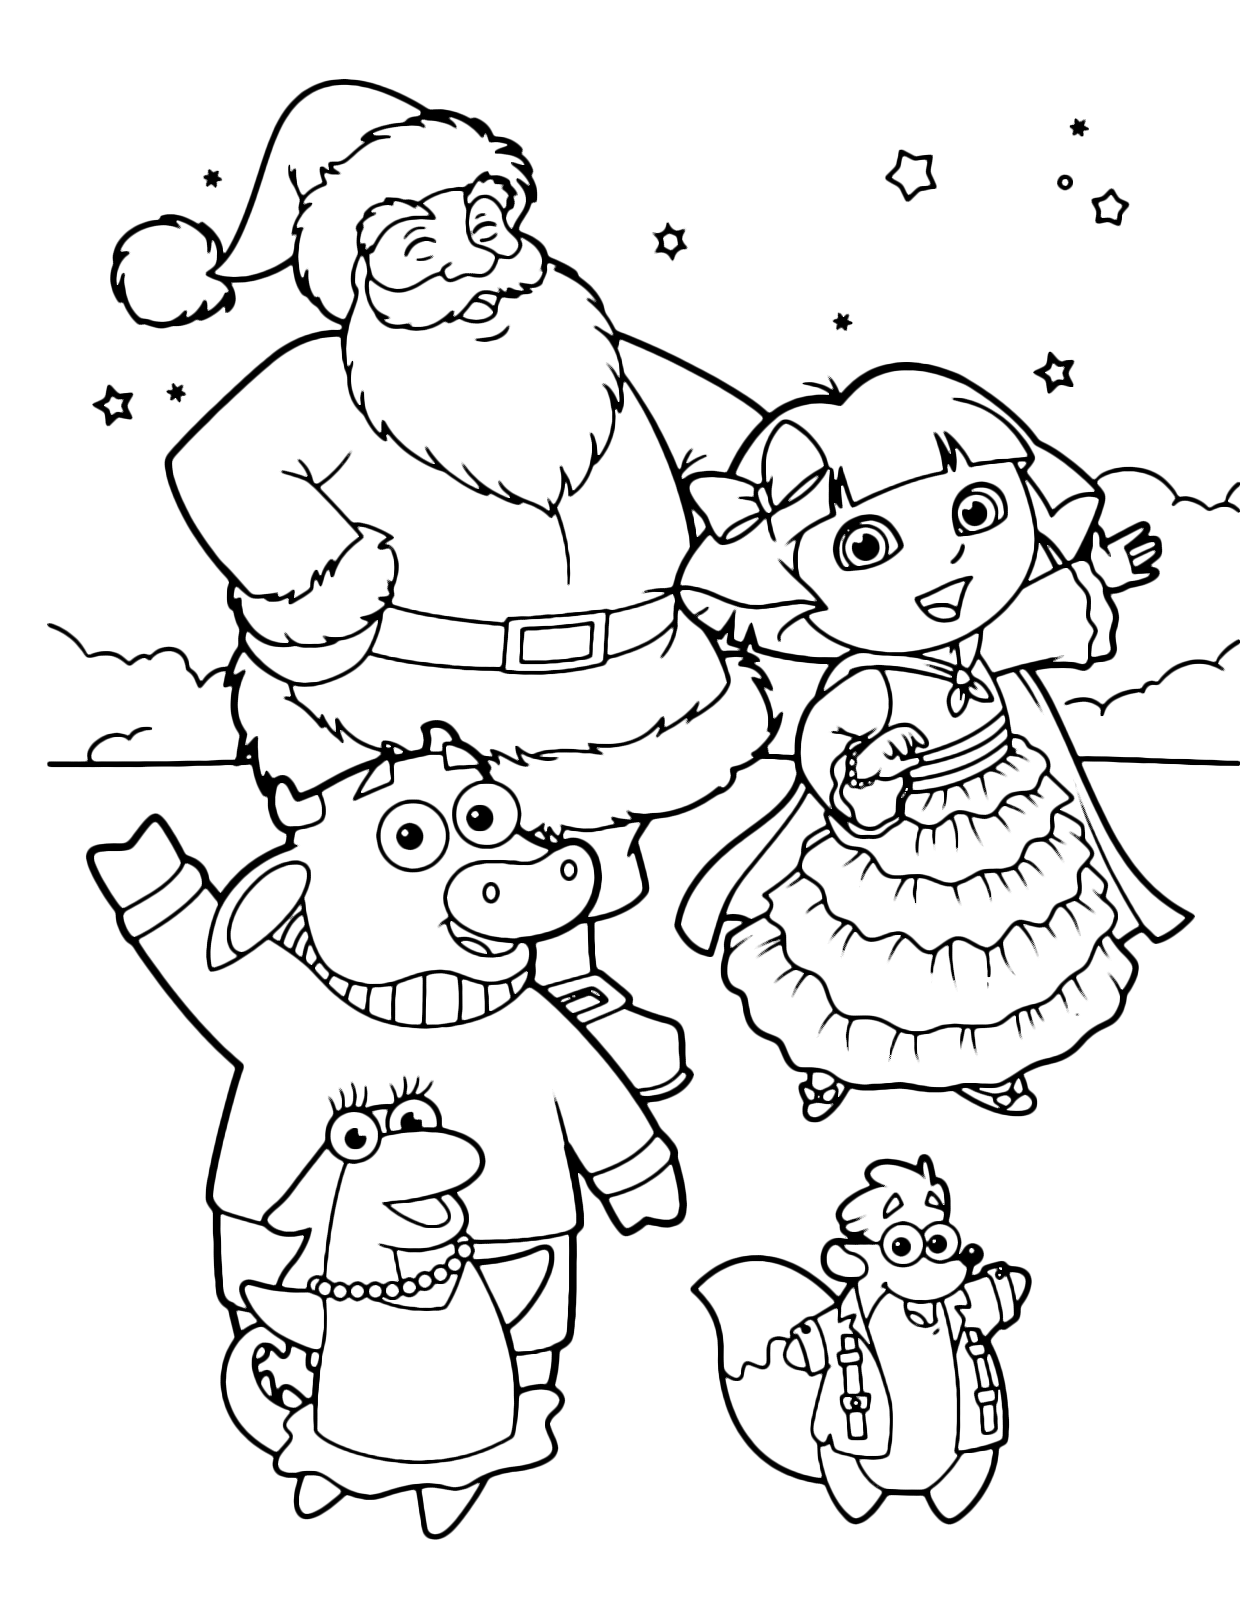 Dora the Explorer - Dora and her friends Benny Isa Tyco with Santa Claus